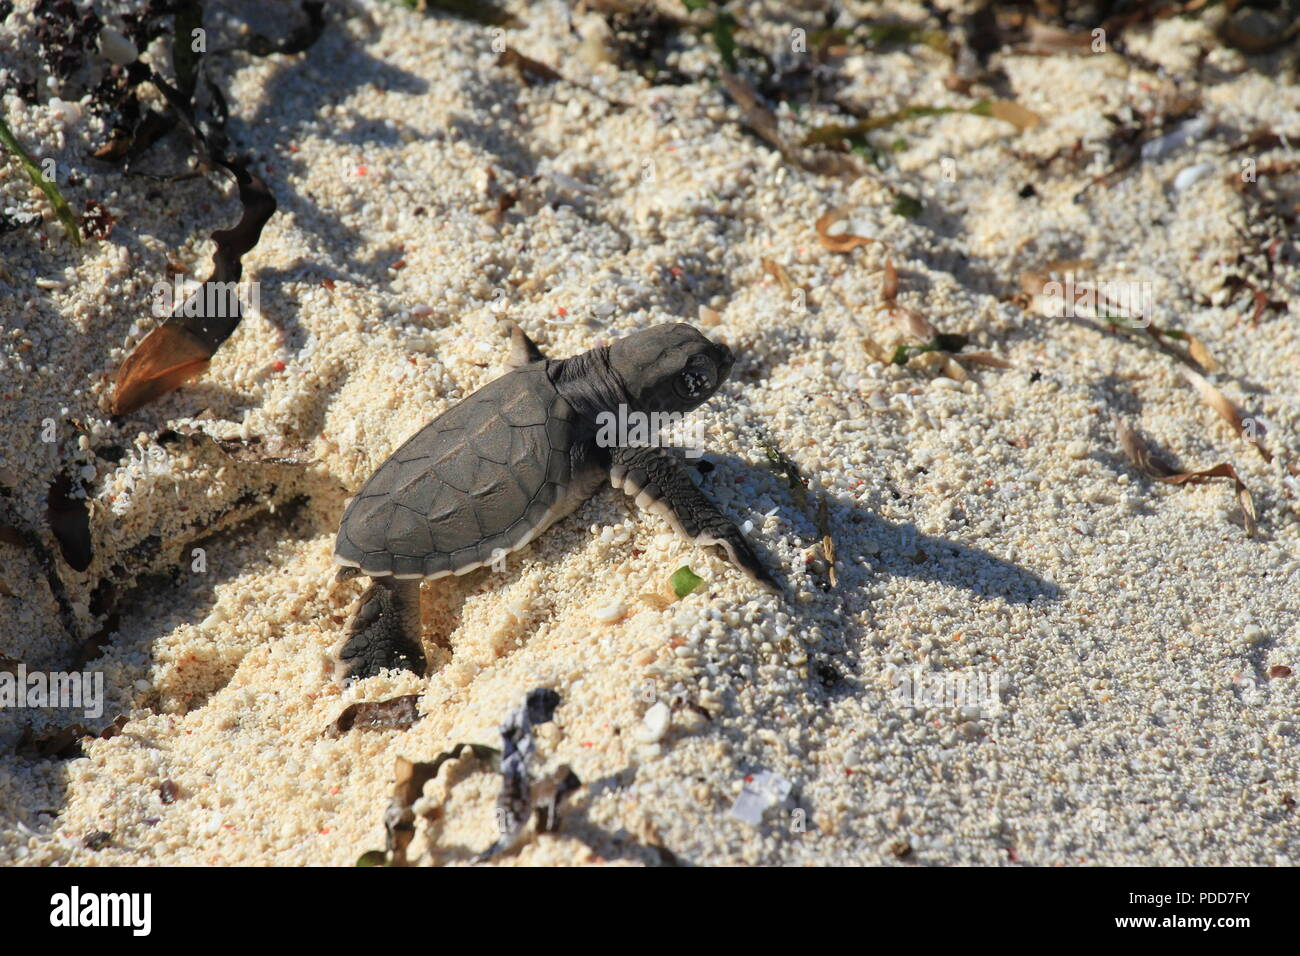 Baby Green turtles - Stock Image